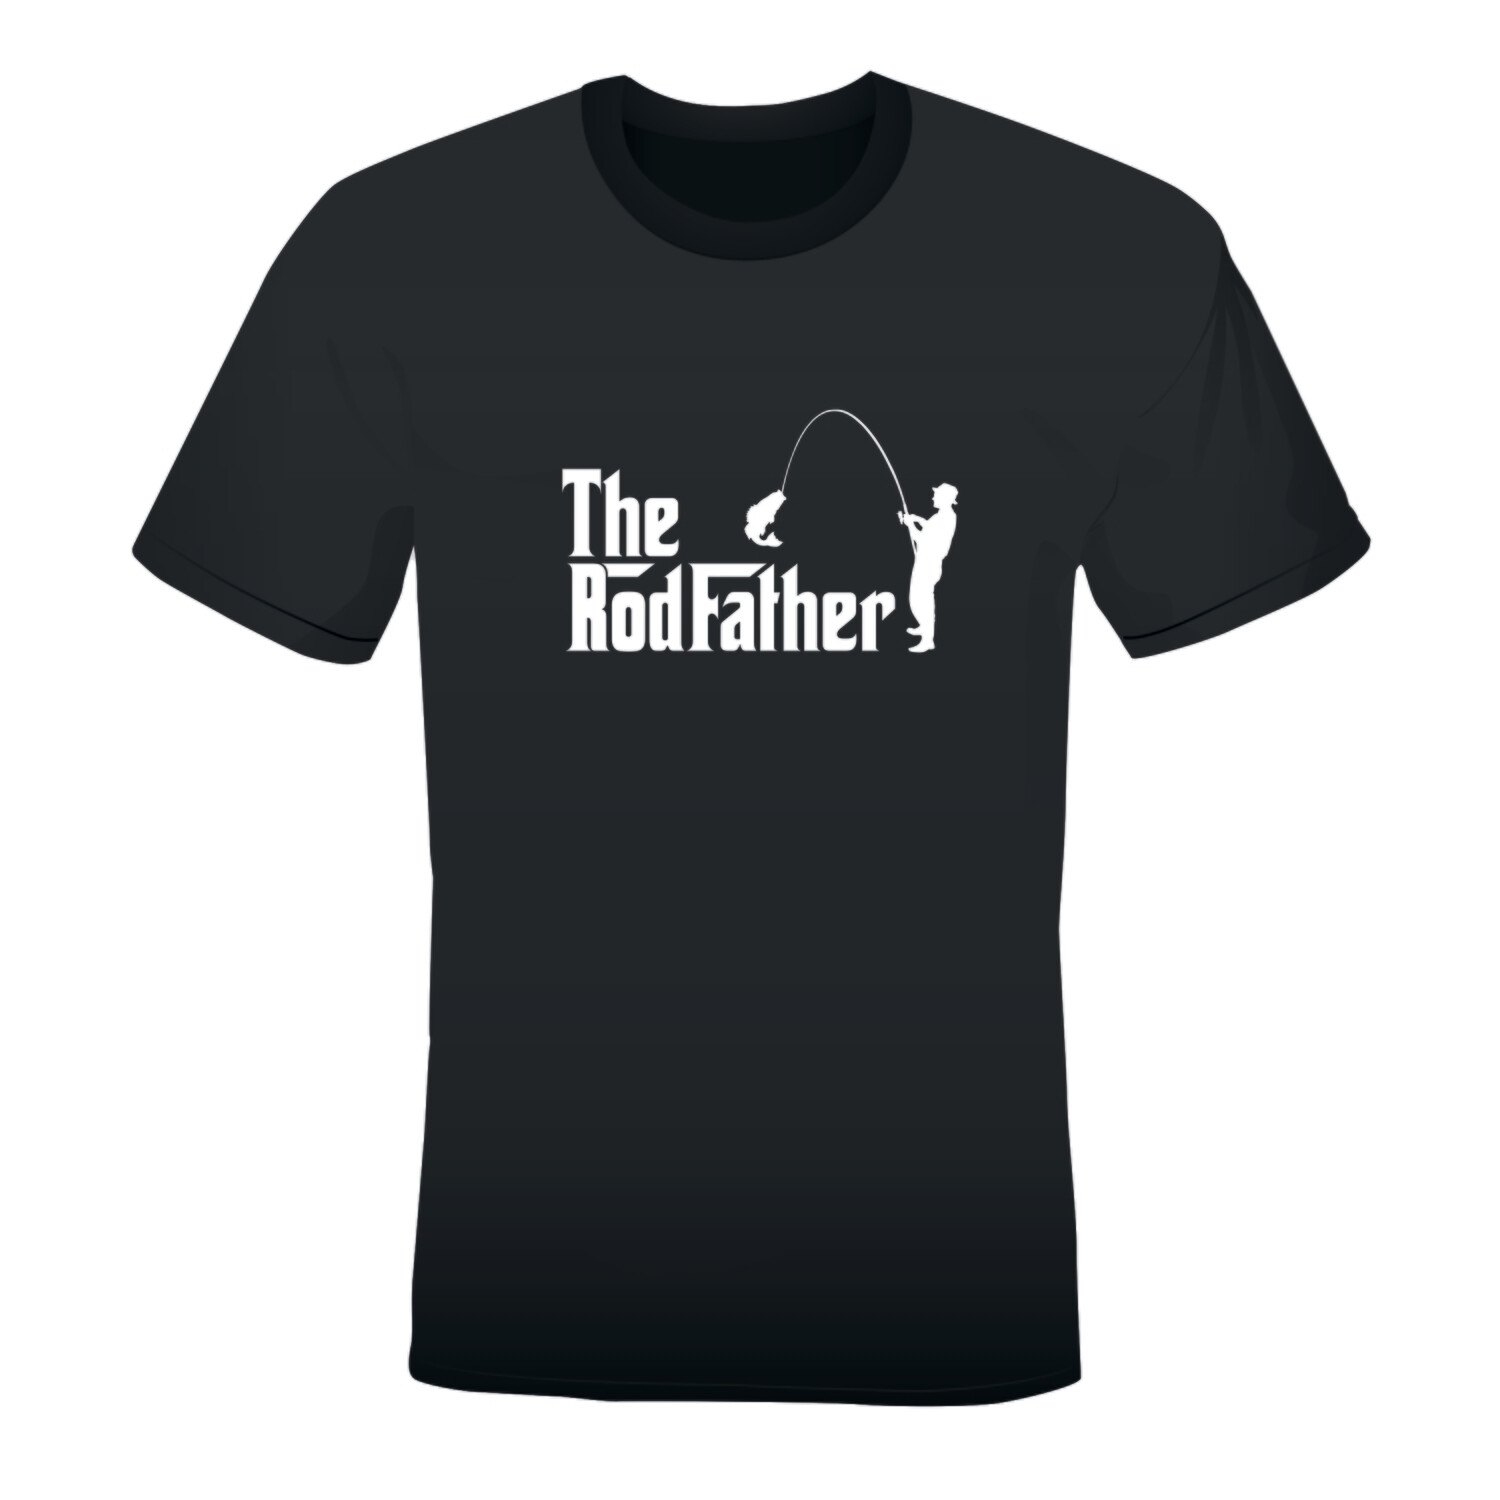 'THE RODFATHER' MEN'S PRINTED T-SHIRT (BLACK)